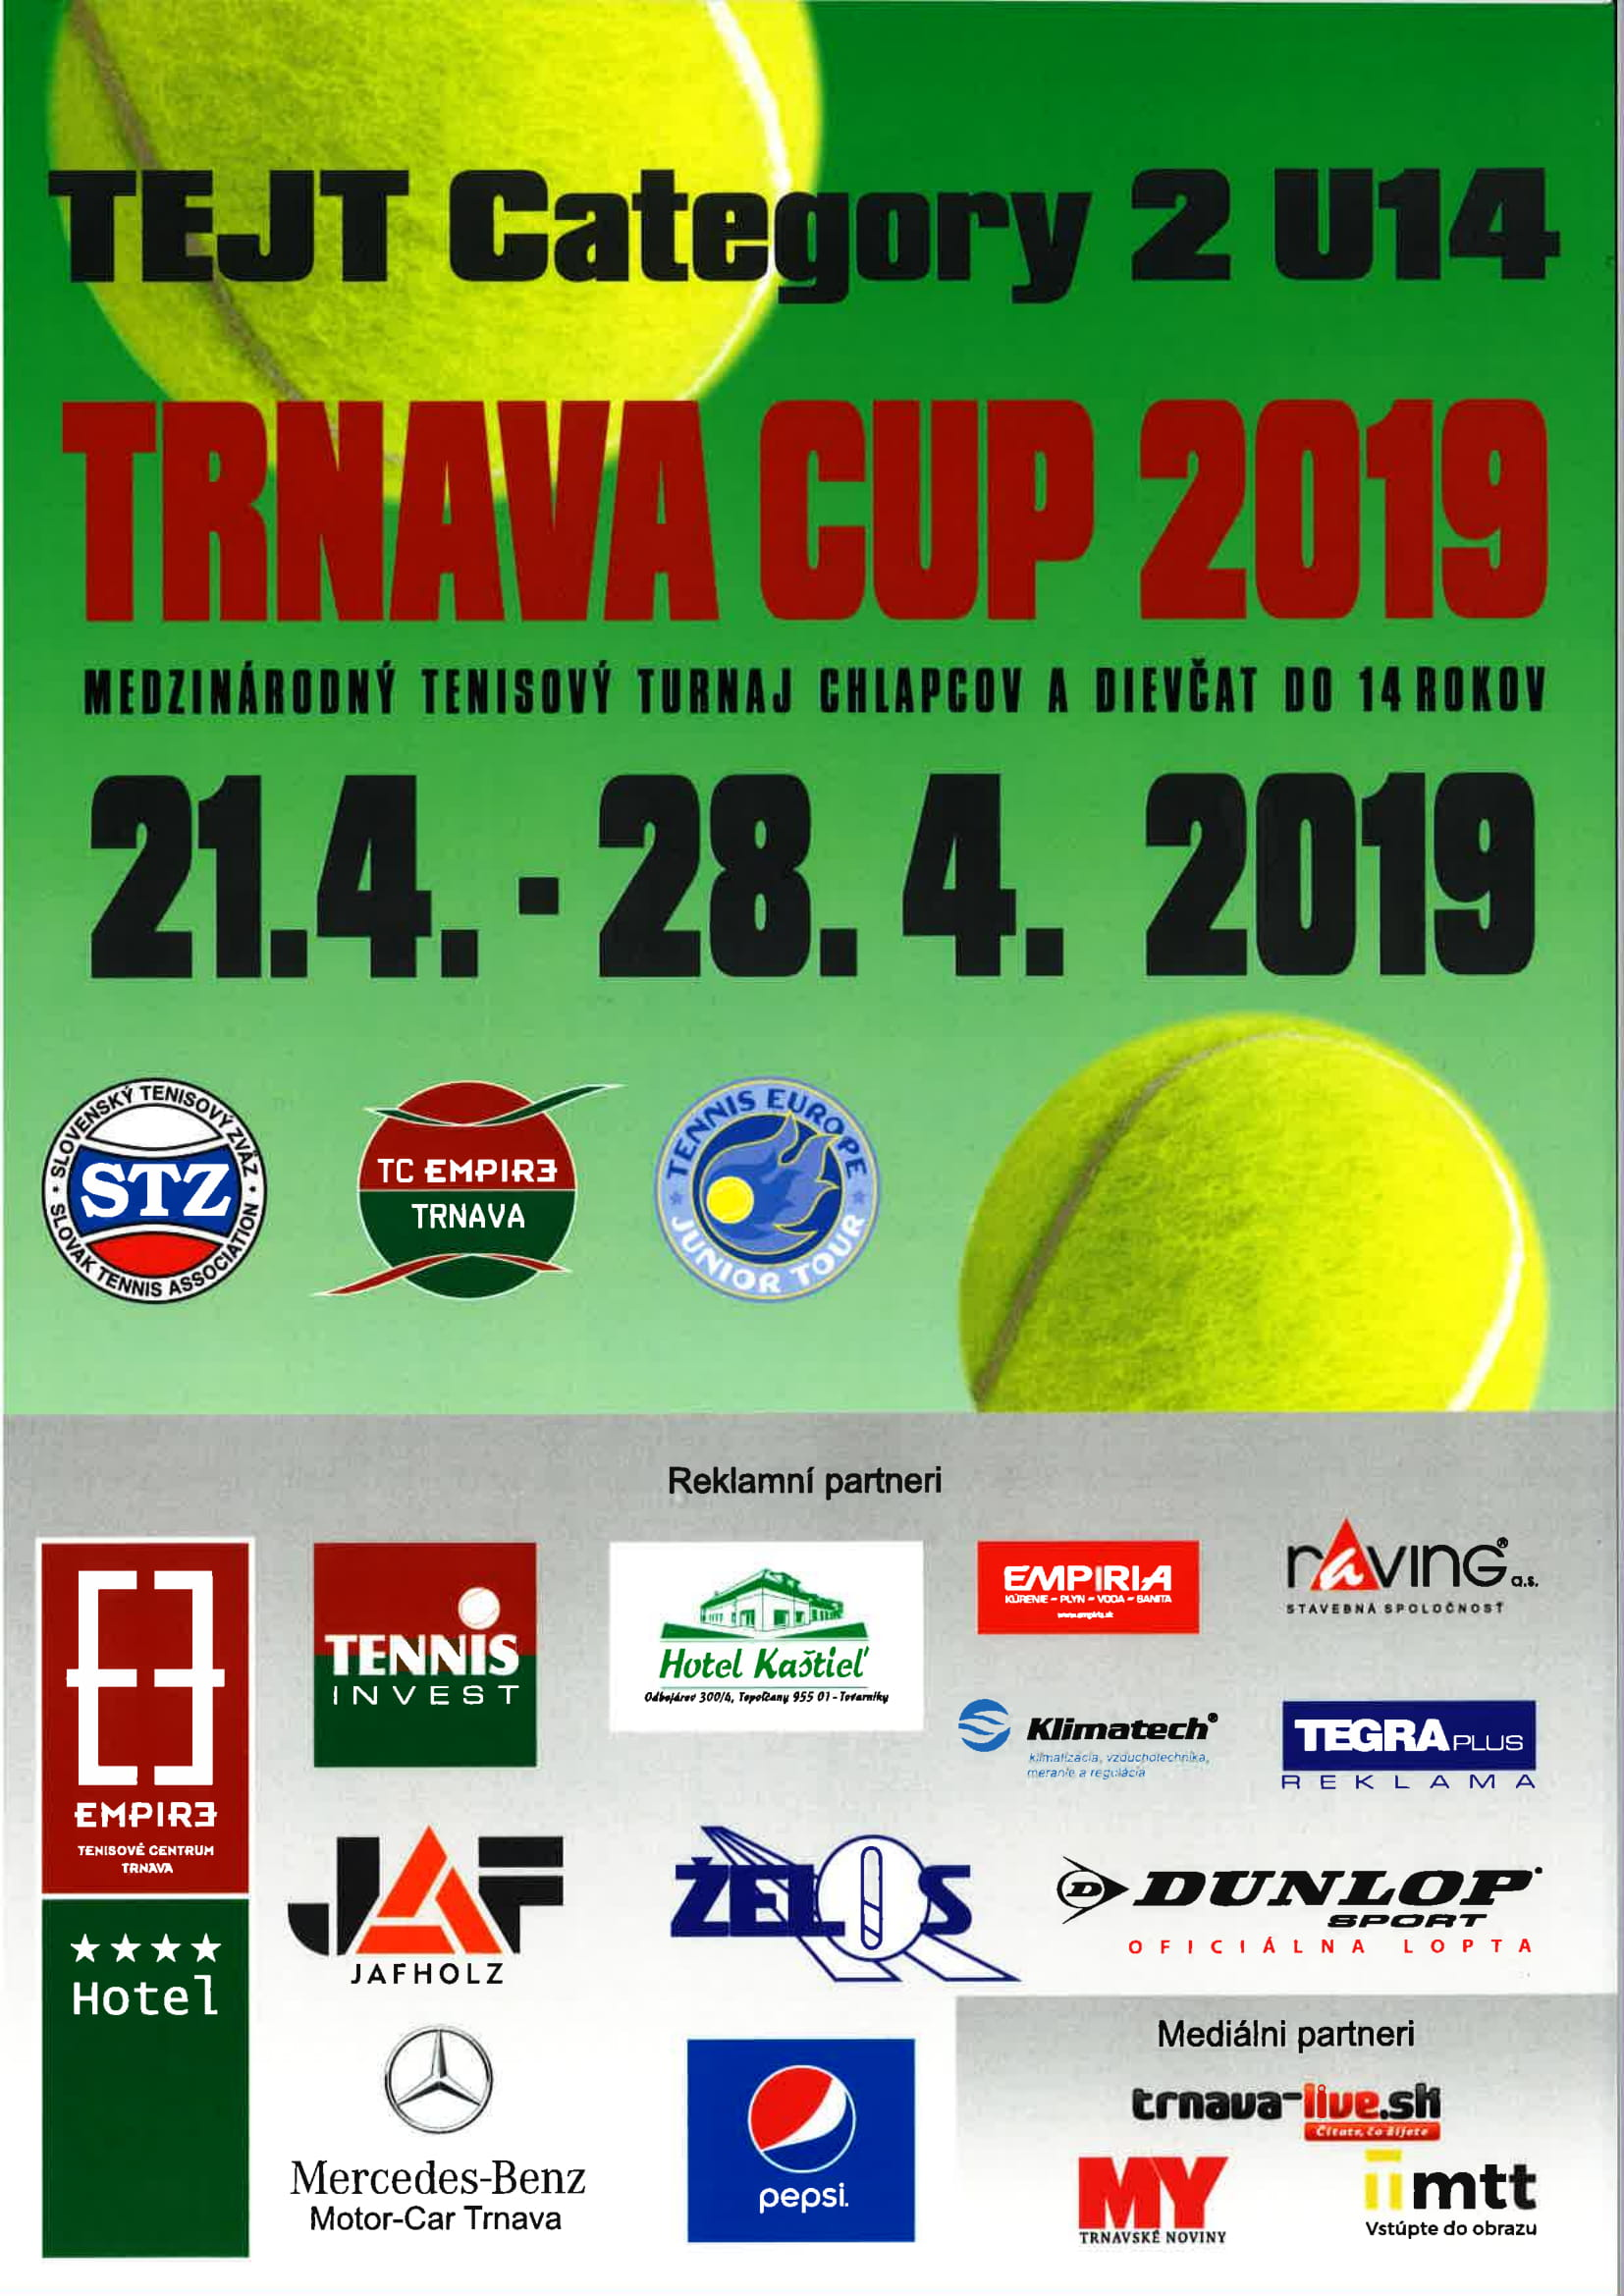 20190420 Trnava Cup 2019  TEJT Category 2 U14